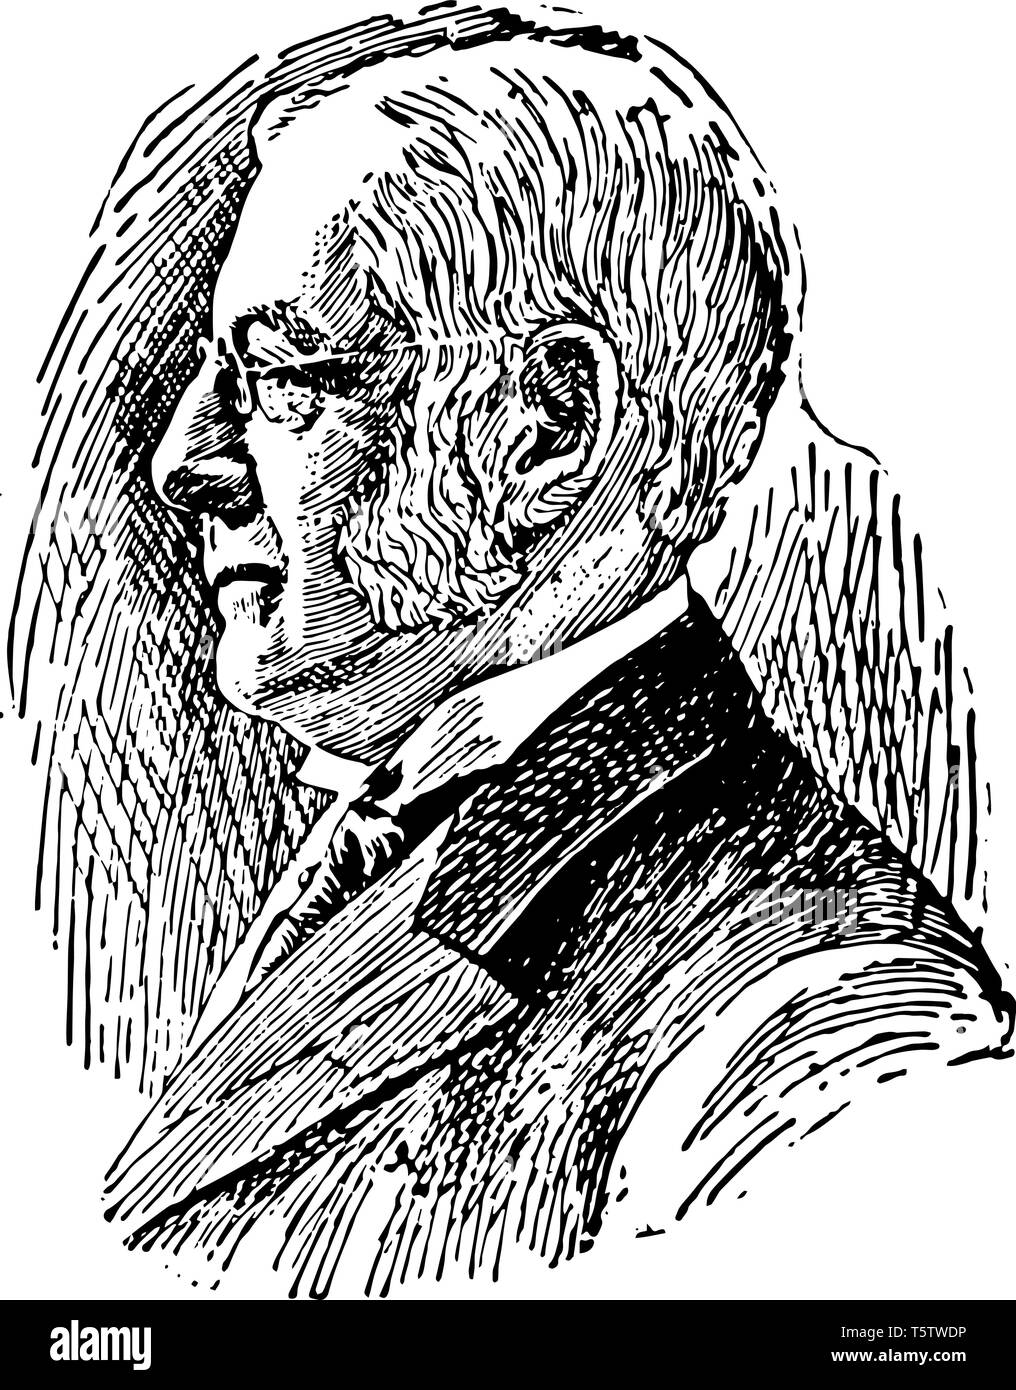 Charles William Eliot 1834 to 1926 he was an American educator and 21st president of Harvard University from 1869 to 1909 vintage line drawing or engr - Stock Vector